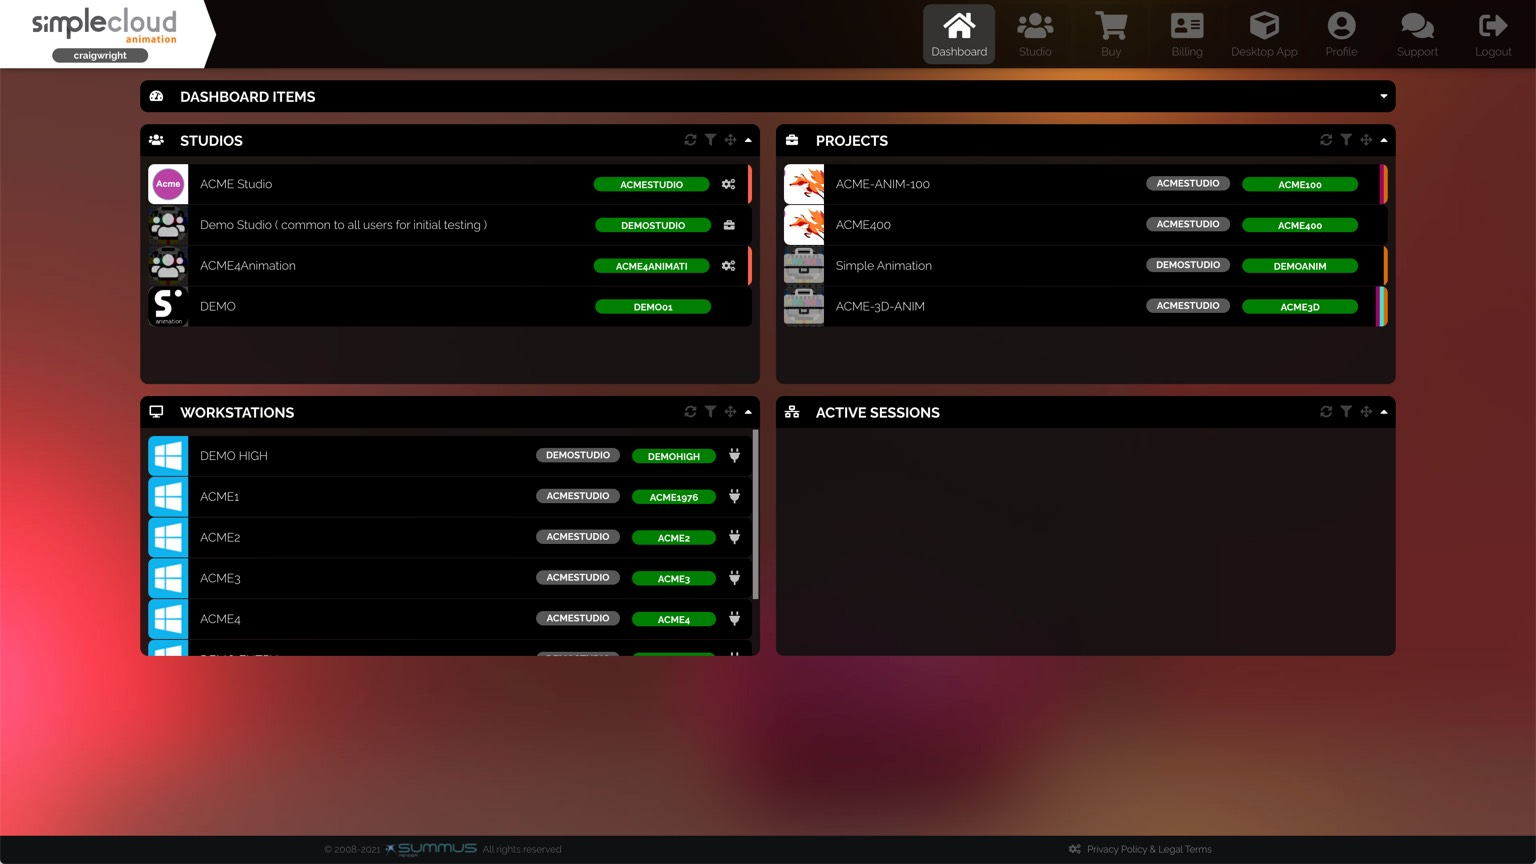 Dashboard shows studios, projects, and workstations you can use.